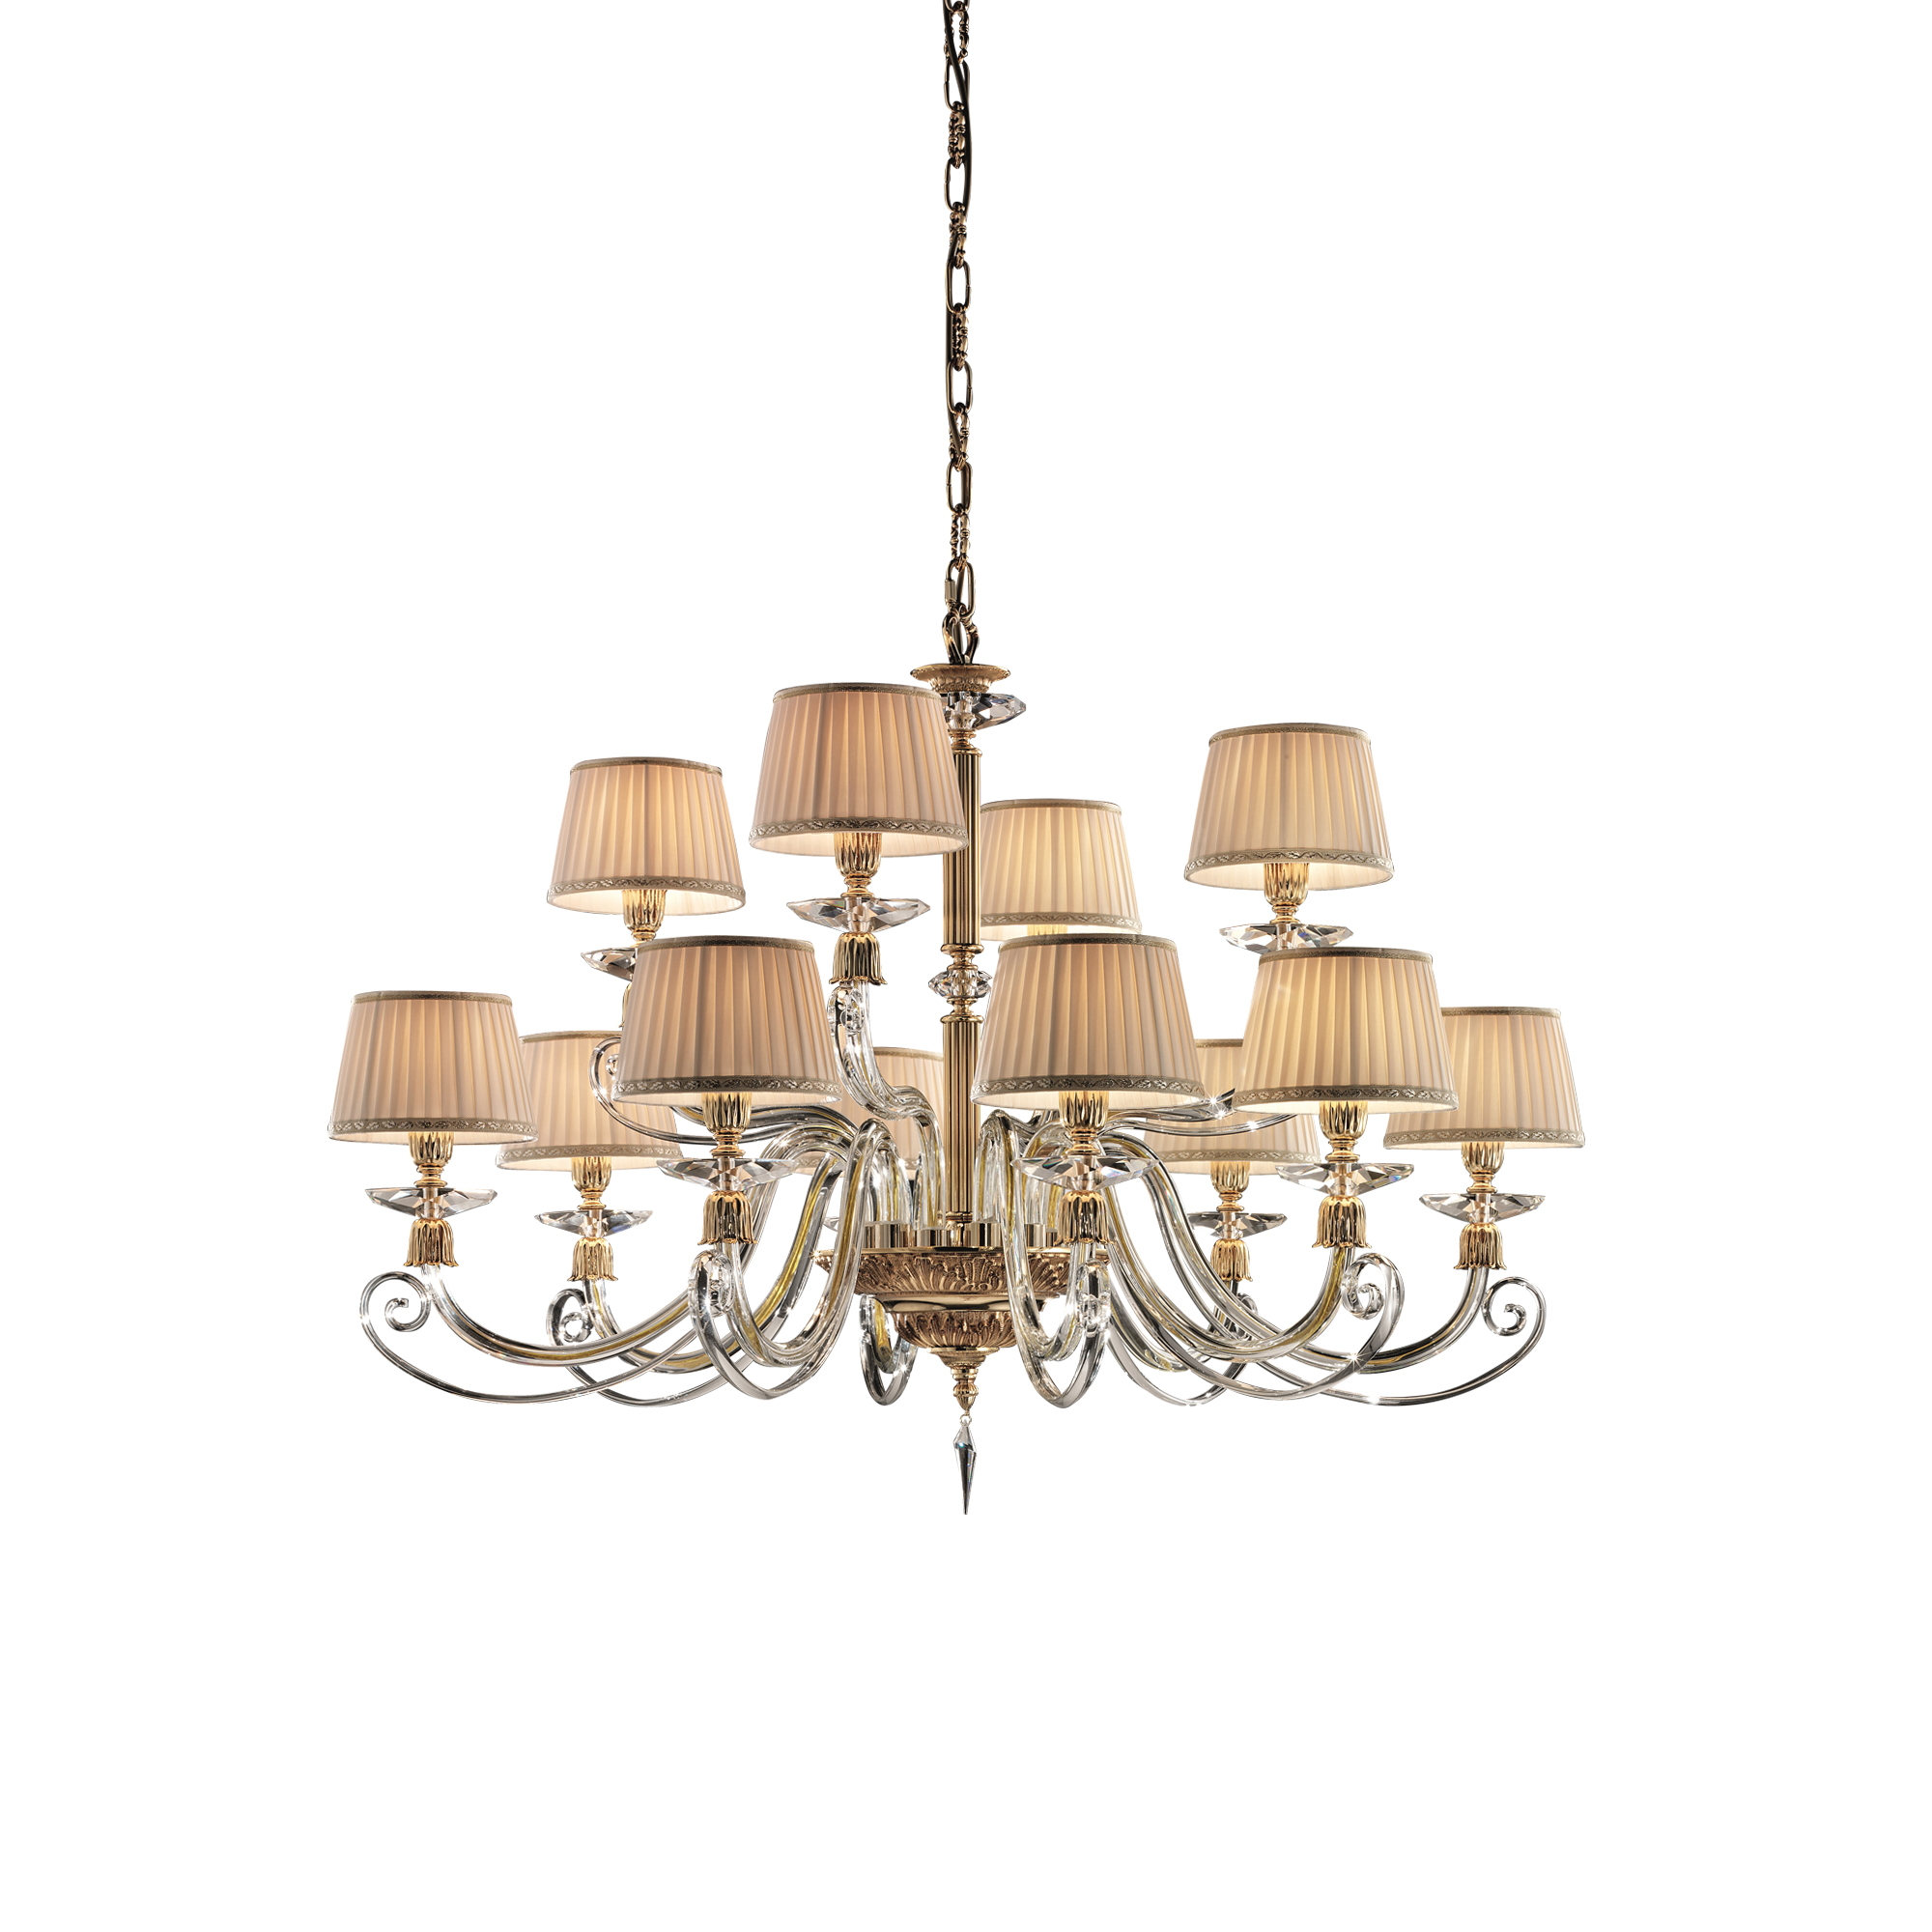 and crystal lights chandelier iron plume weeks sconce niermann products